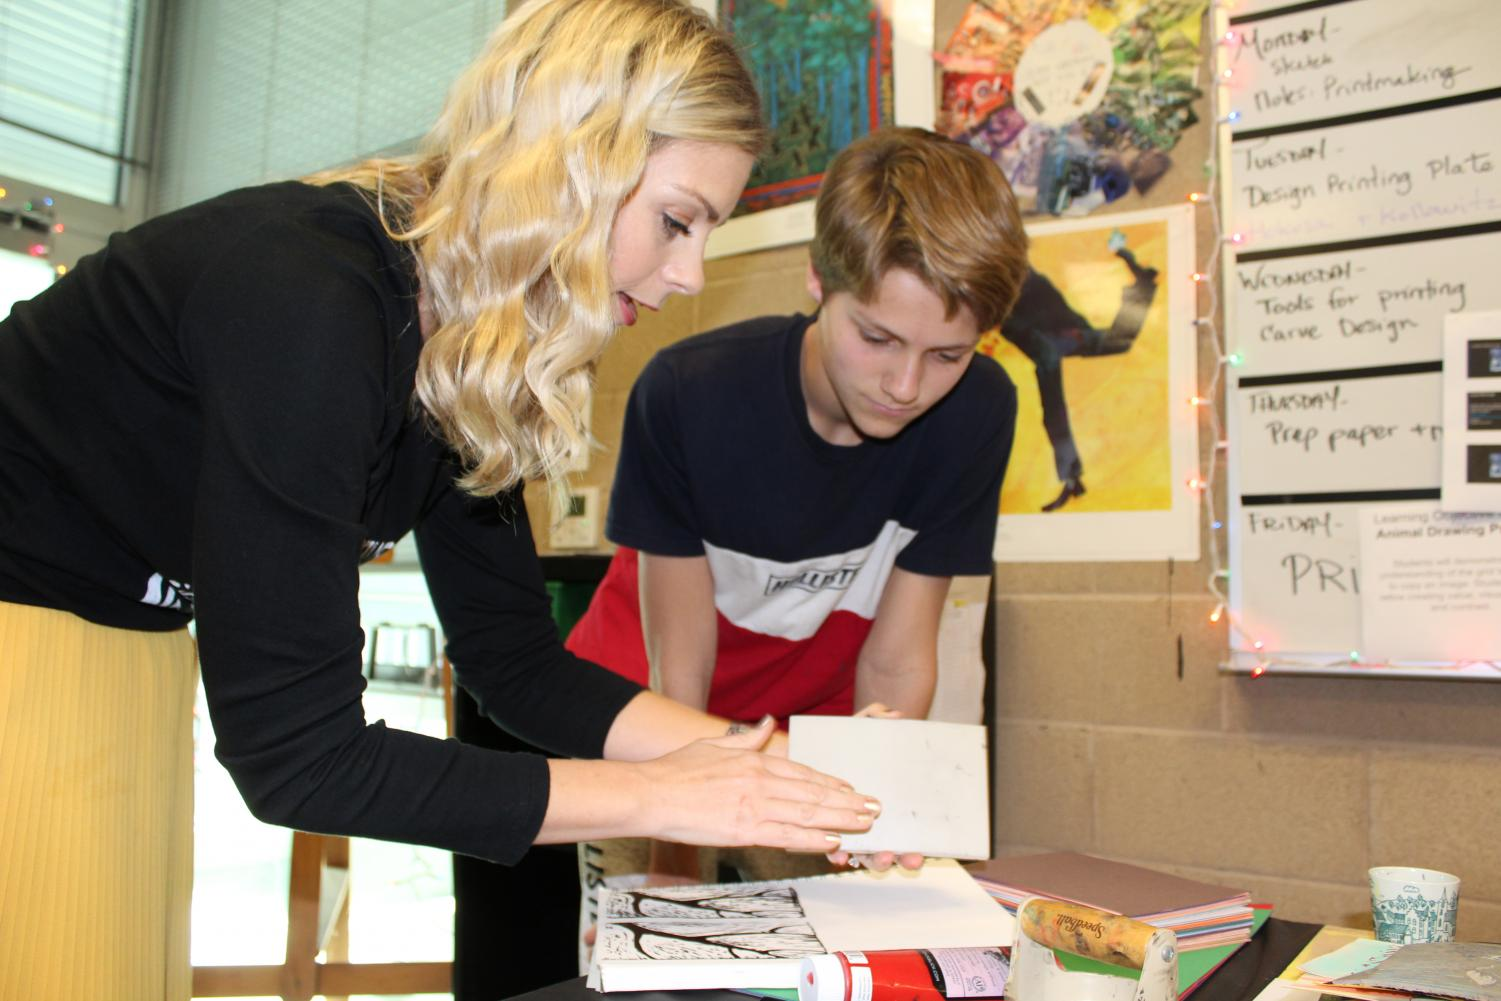 Megan Herrick helps a student create a piece of art during class. She gave him new ideas and helpful guidance for finishing his artwork.